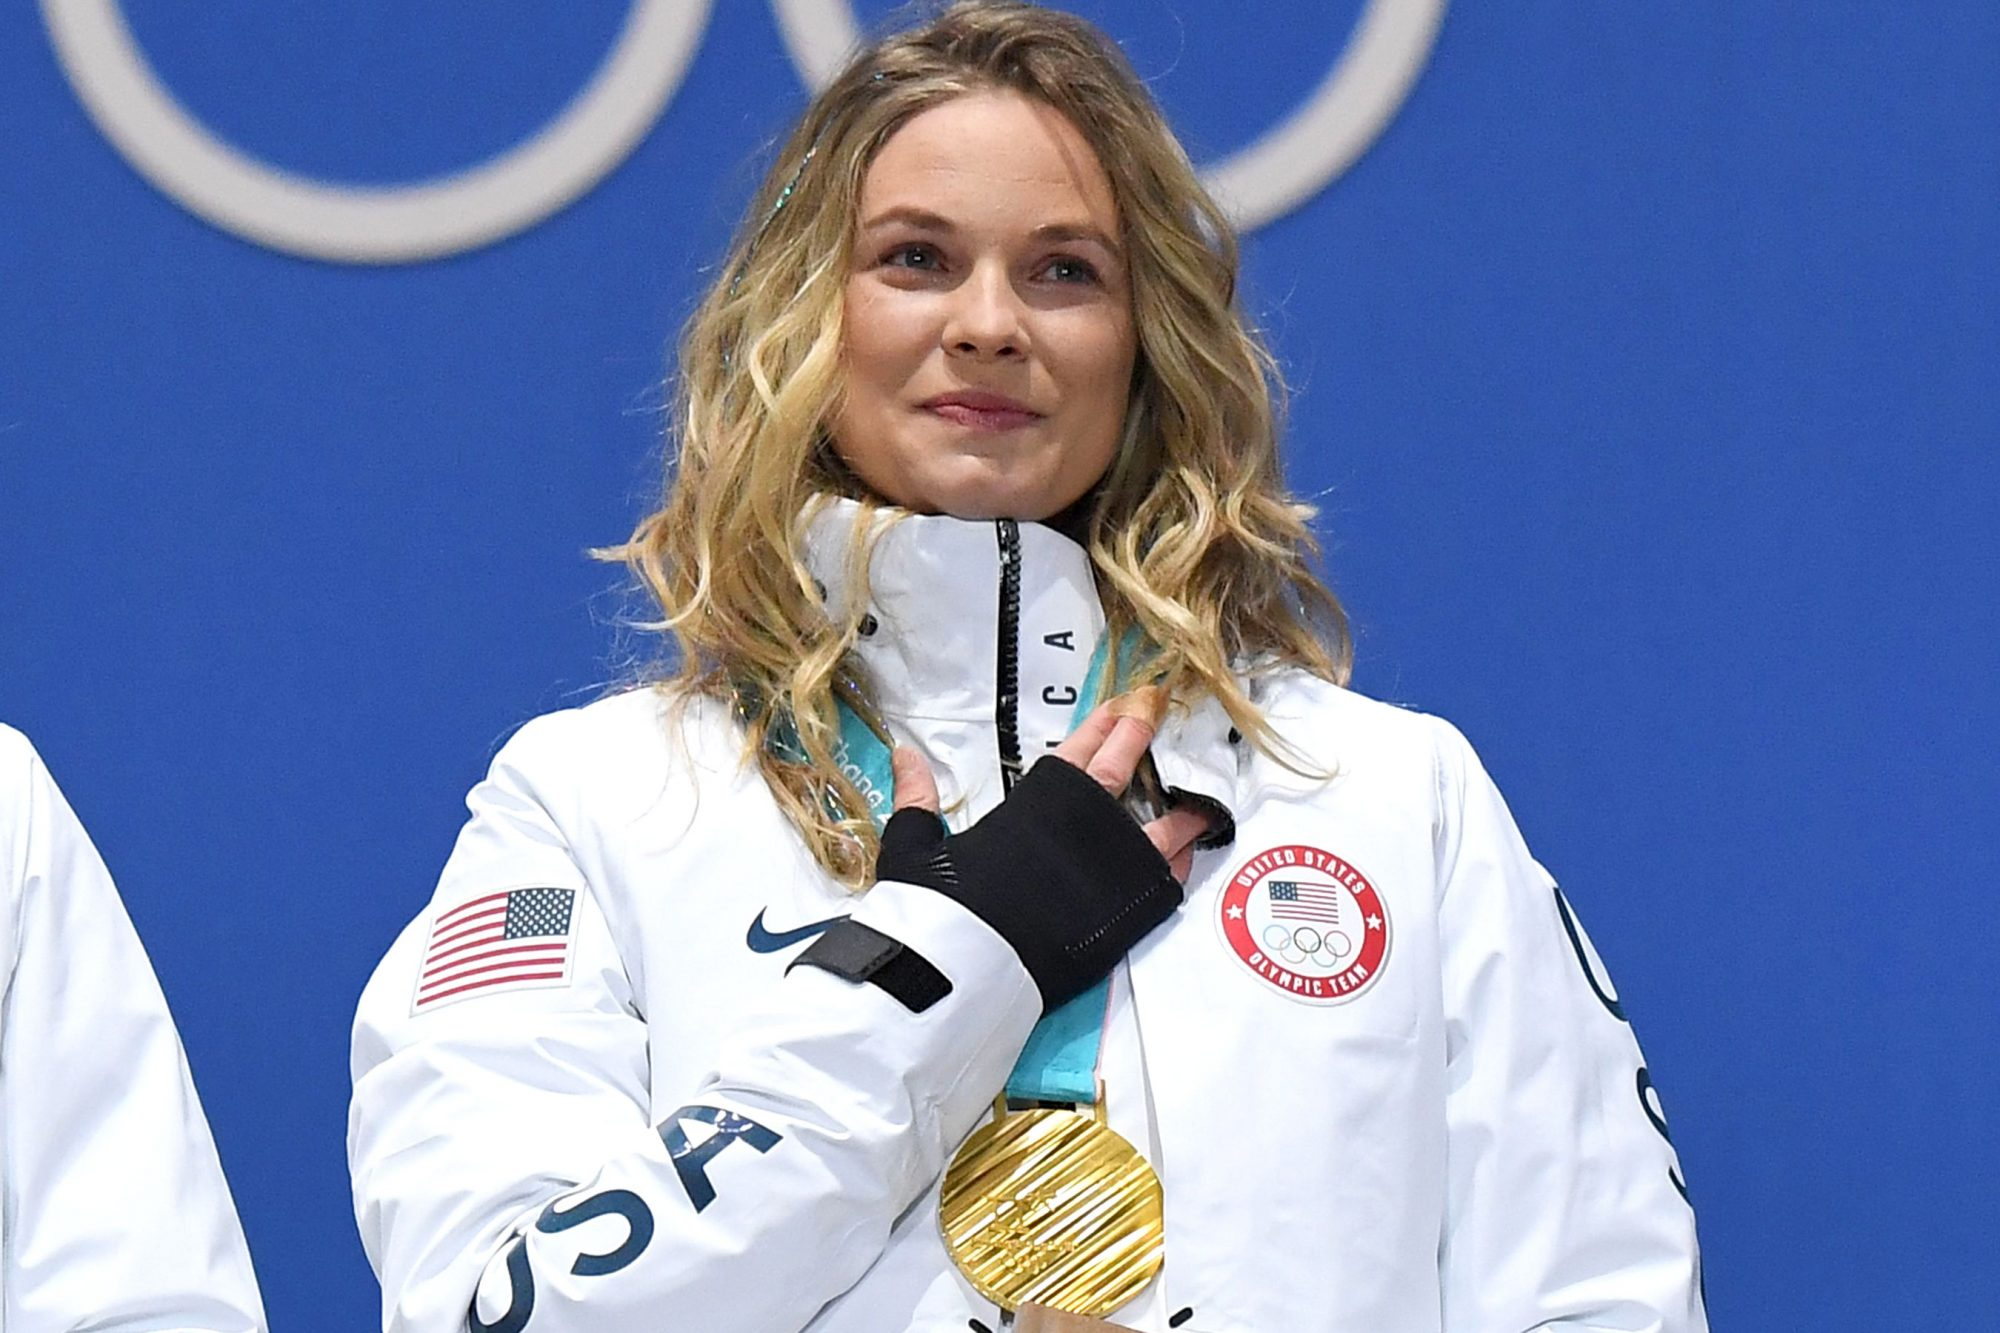 CCOUNTRY-OLY-2018-PYEONGCHANG-MEDALS